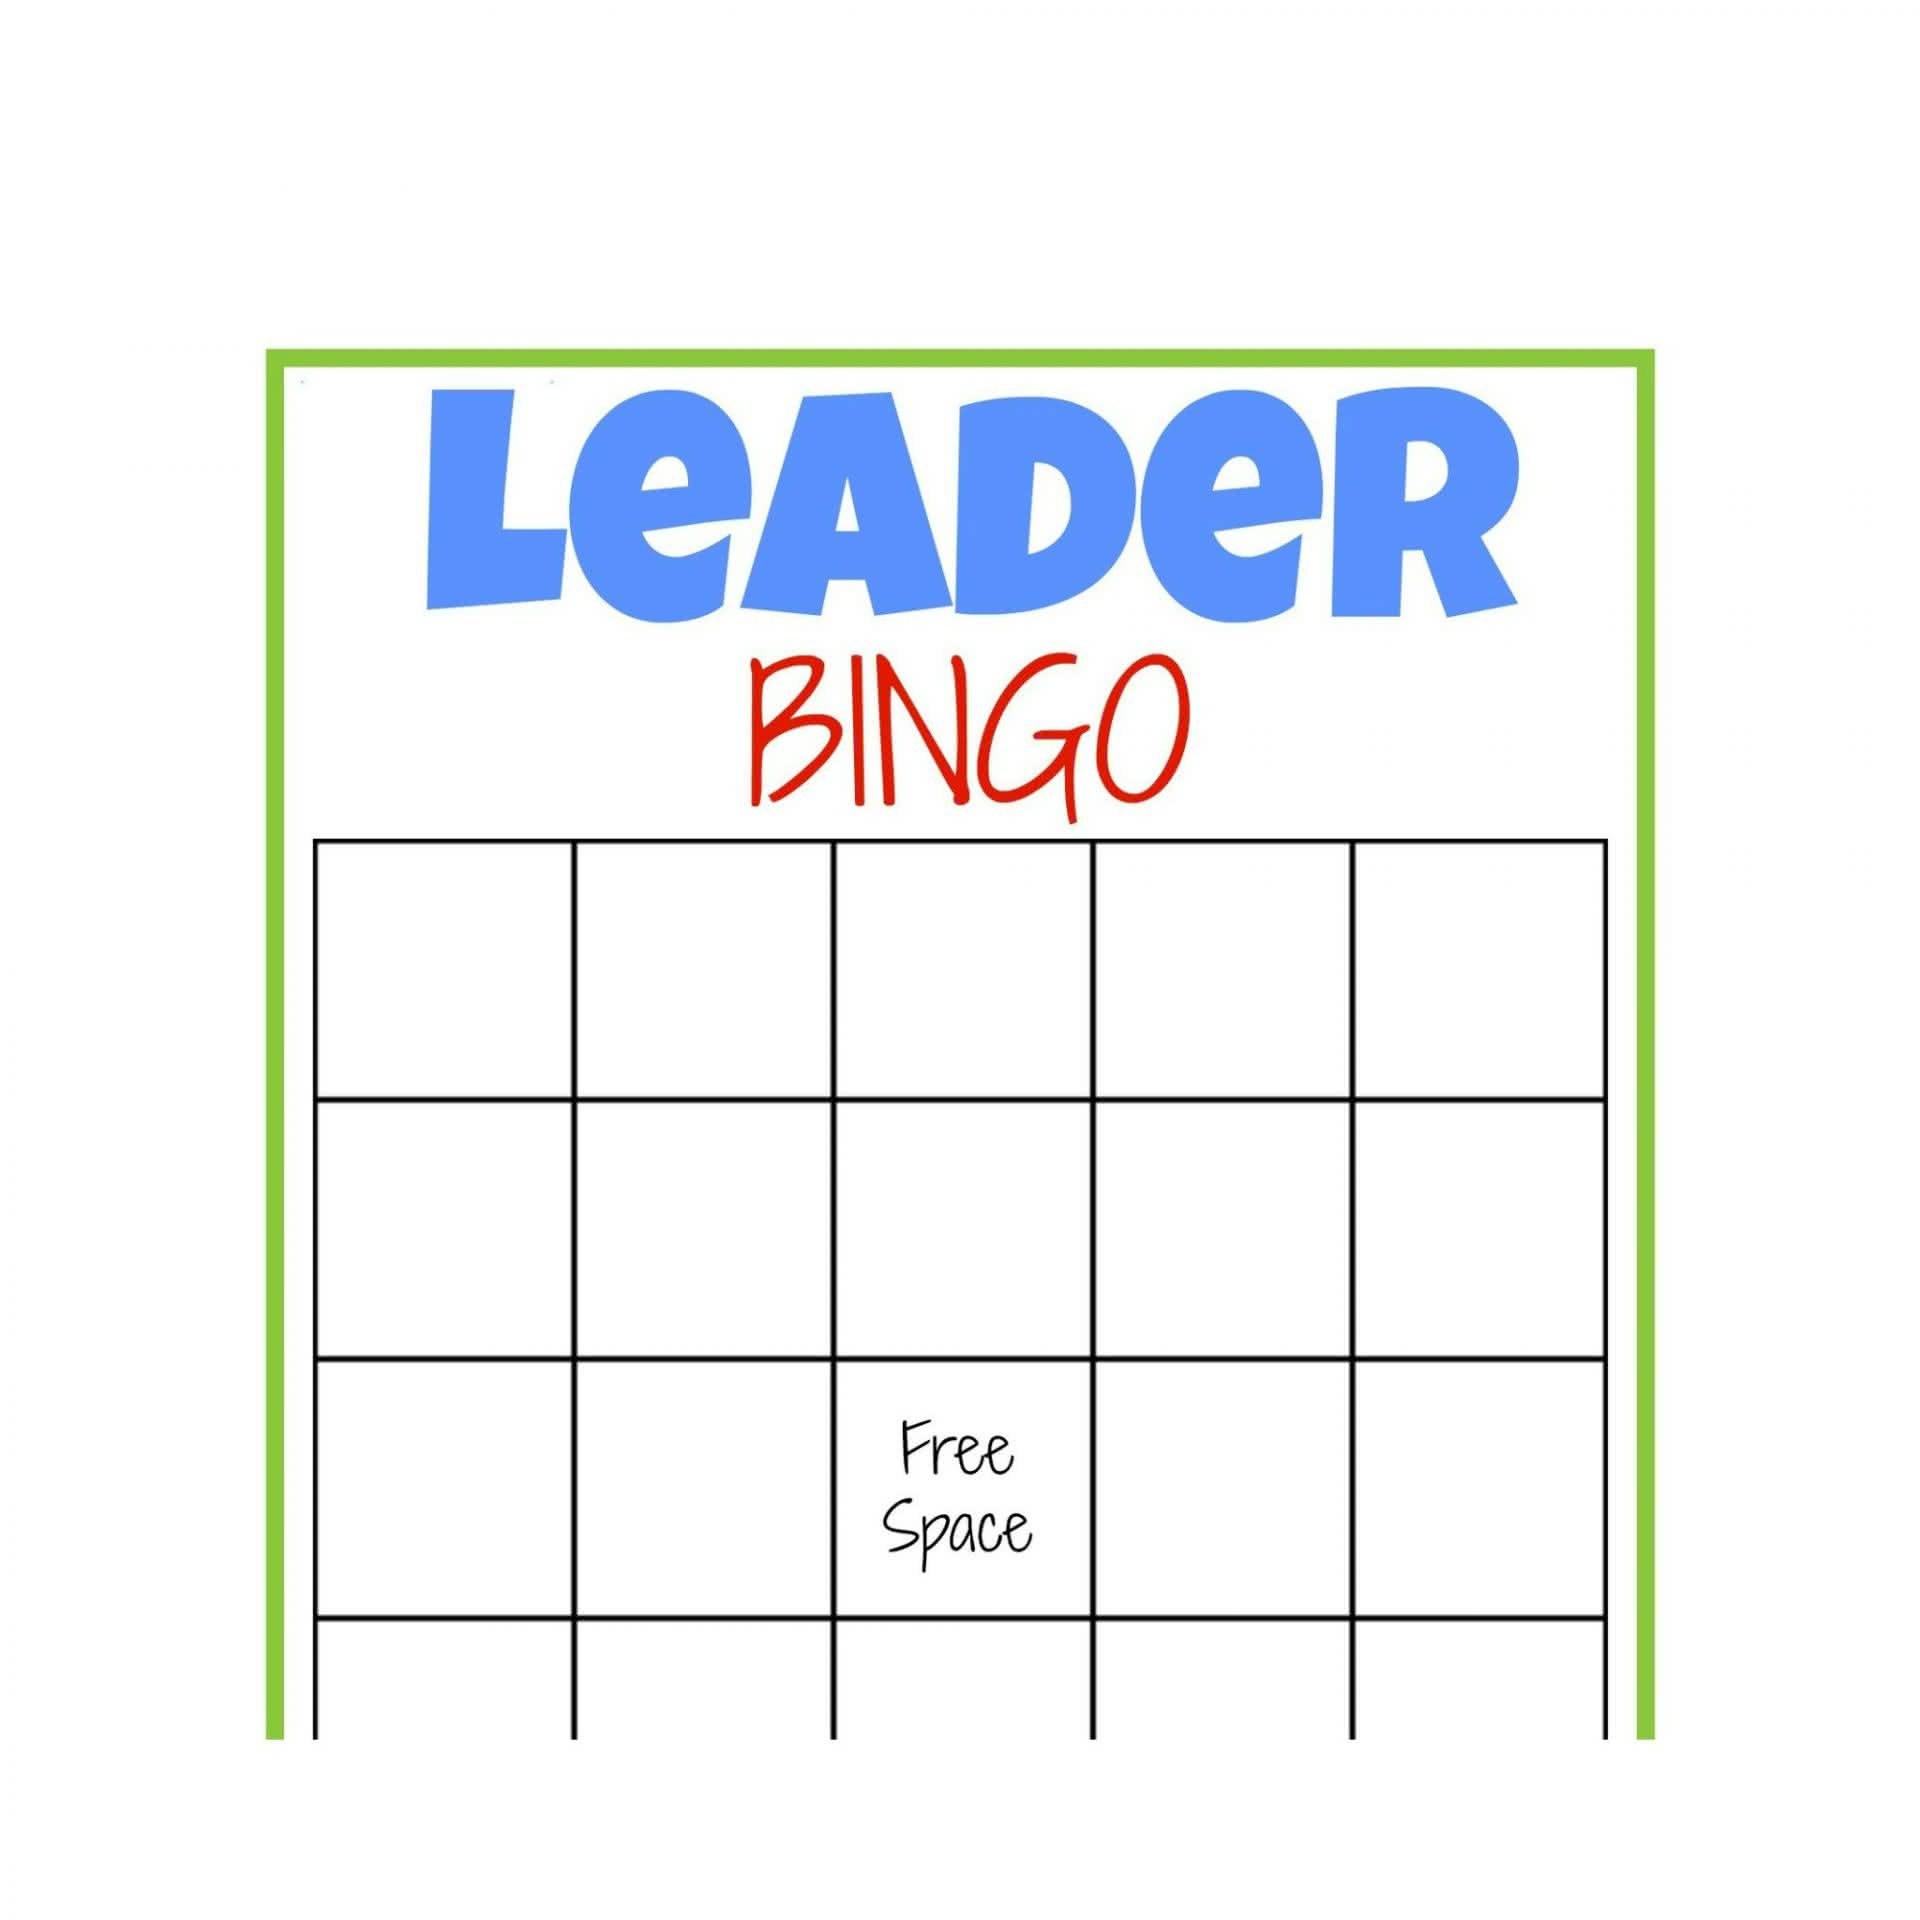 I Am So Excited To Bring You A Free Printable Leader Bingo Game Today Please Feel